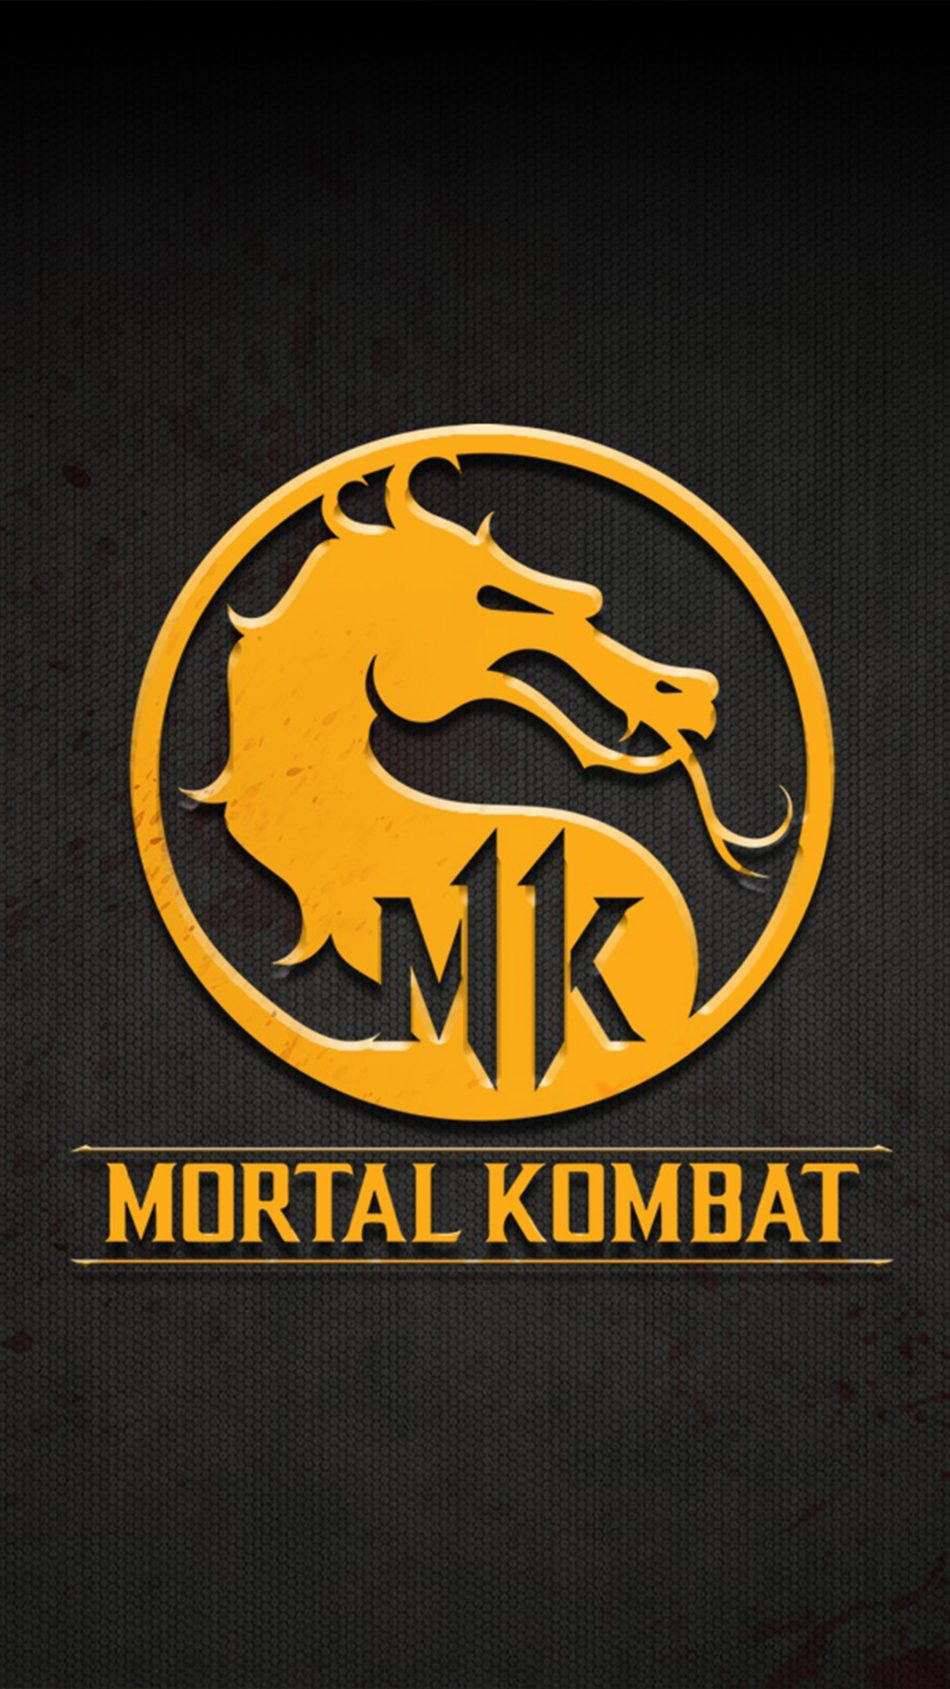 Mortal Kombat 11 Logo 4k Ultra Hd Mobile Wallpaper